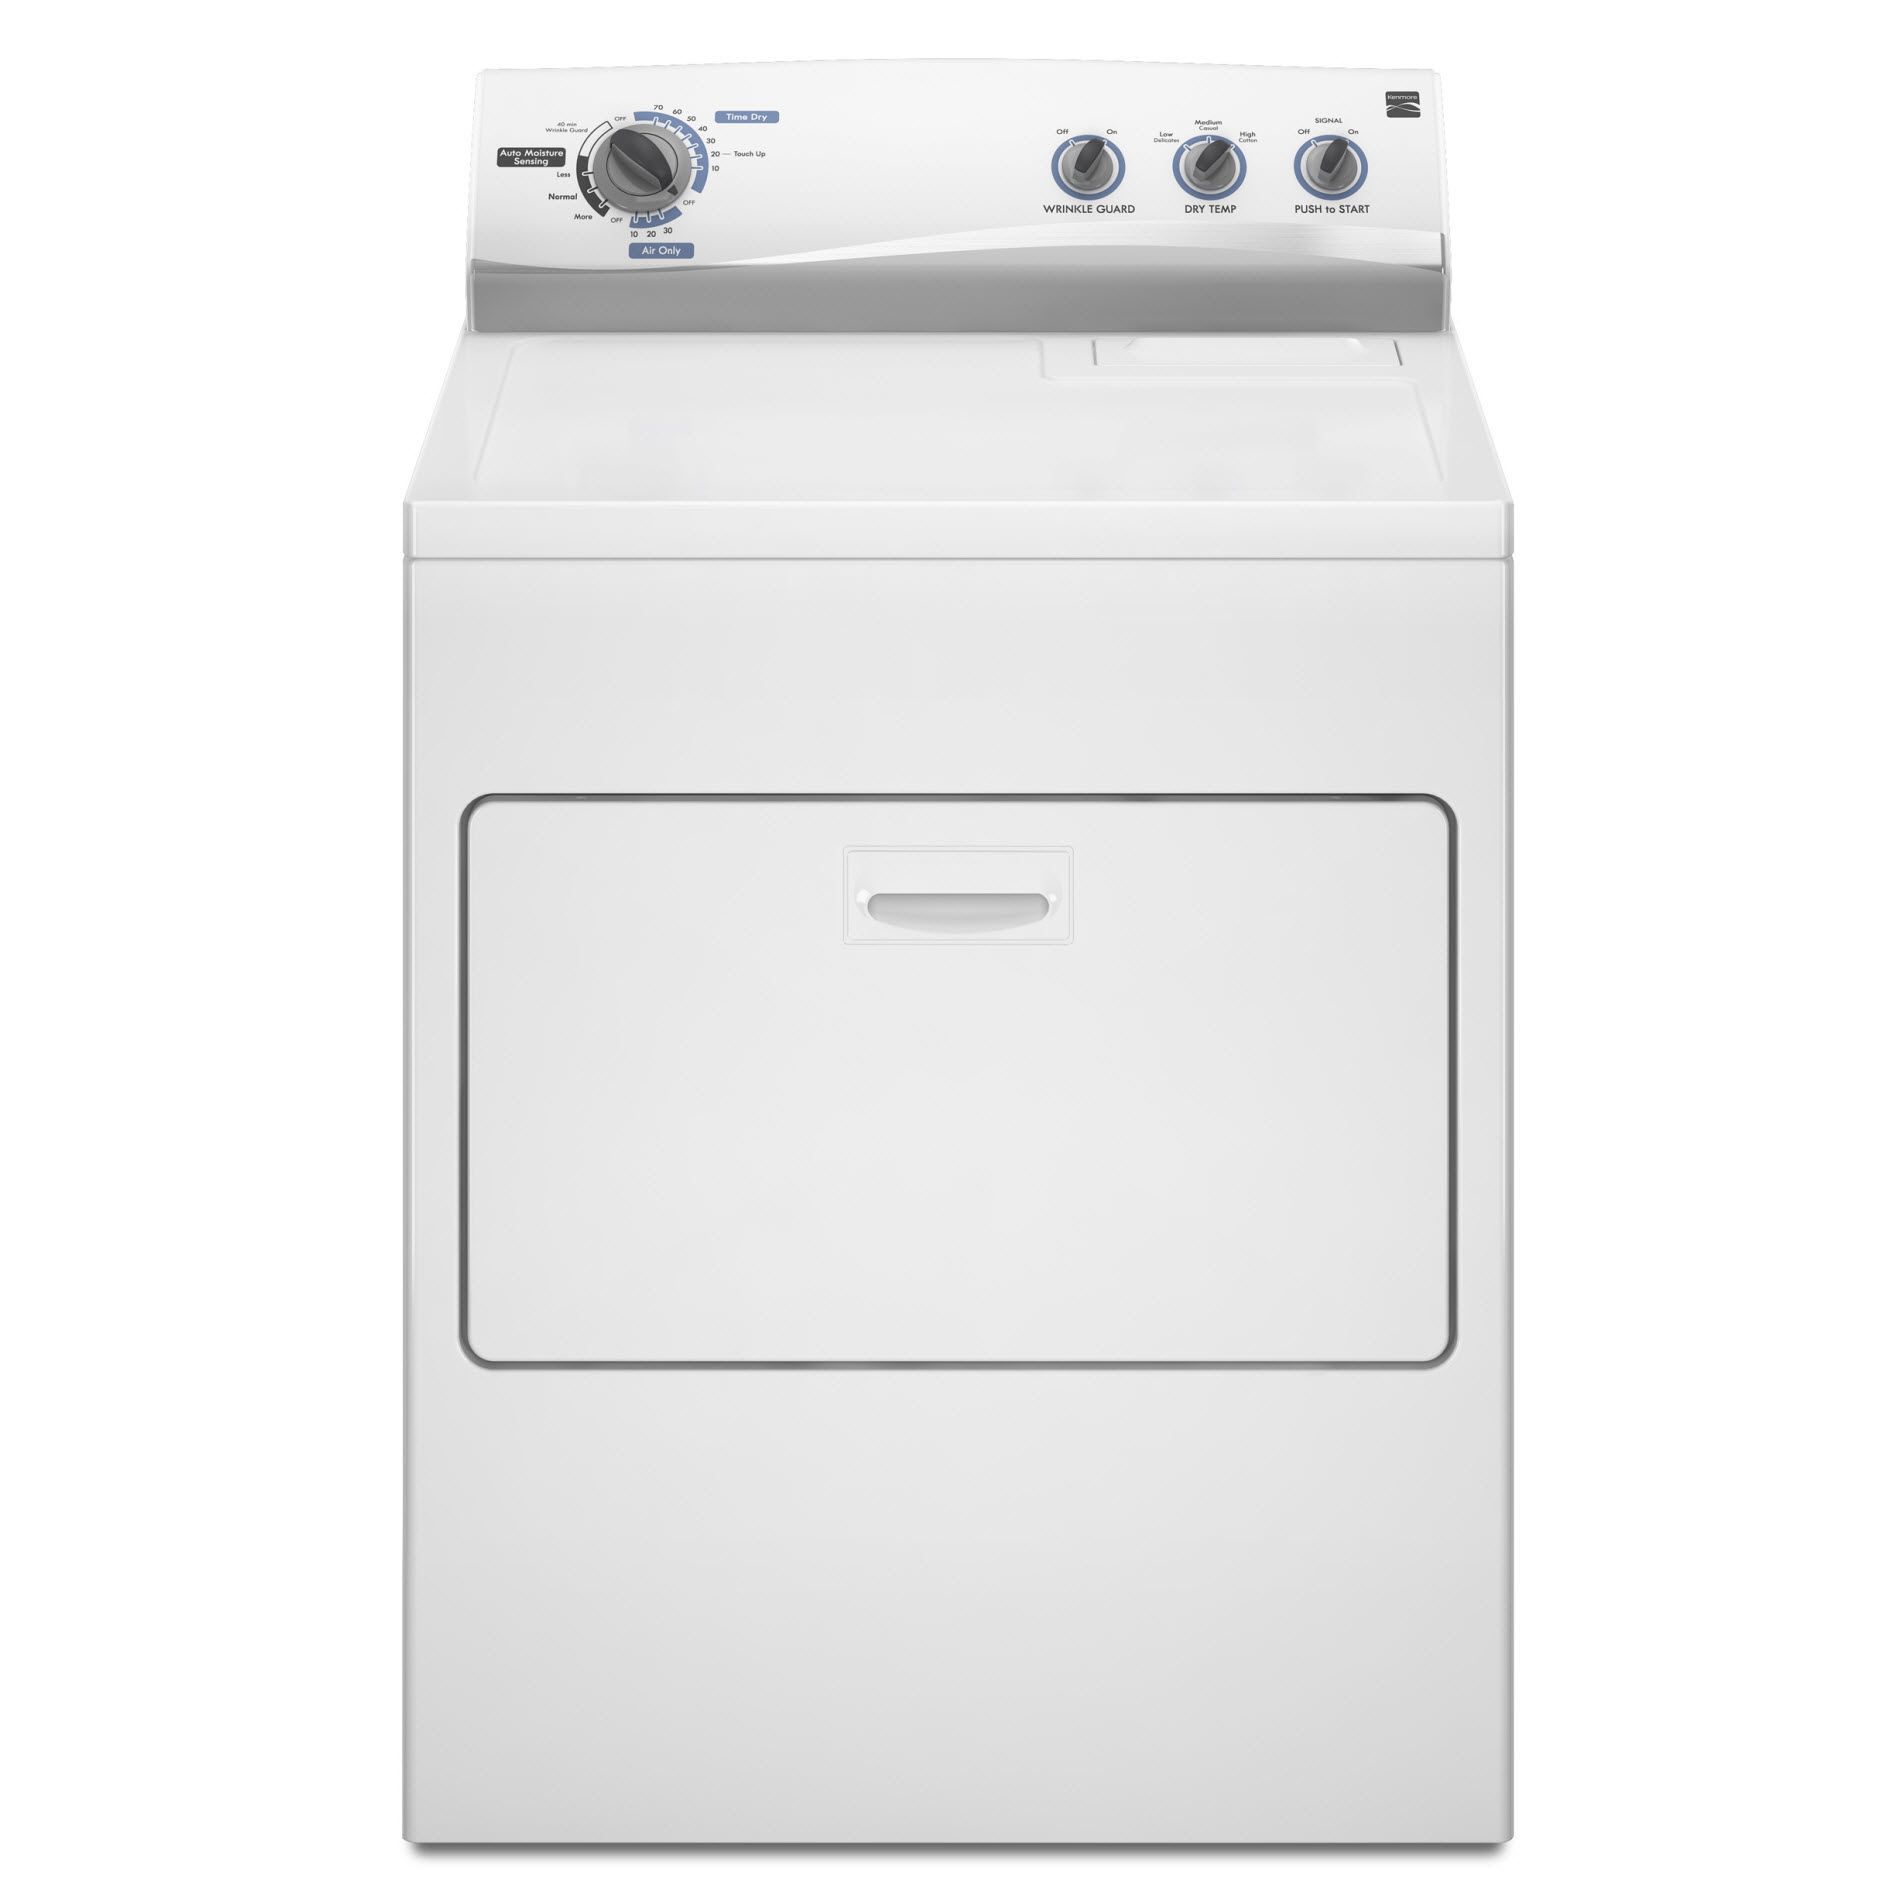 medium resolution of kenmore washer fuse location kenmore washer noise wiring whirlpool dryer belt diagram whirlpool dryer electrical schematic